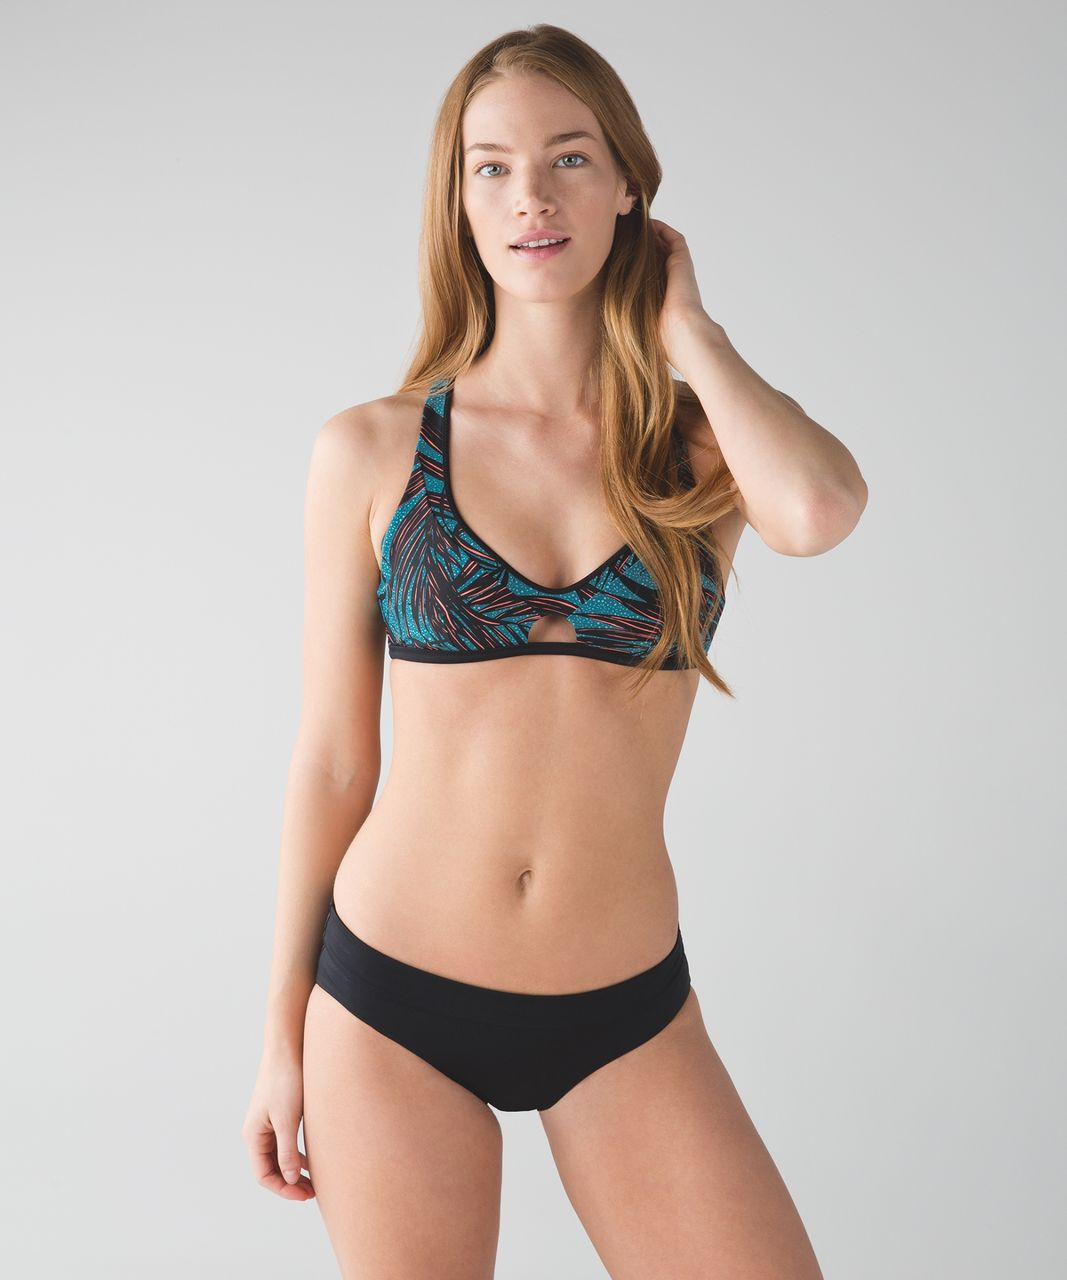 Lululemon Surf To Sand Sport Top II - Palm Lace Tofino Teal Grapefruit / Black